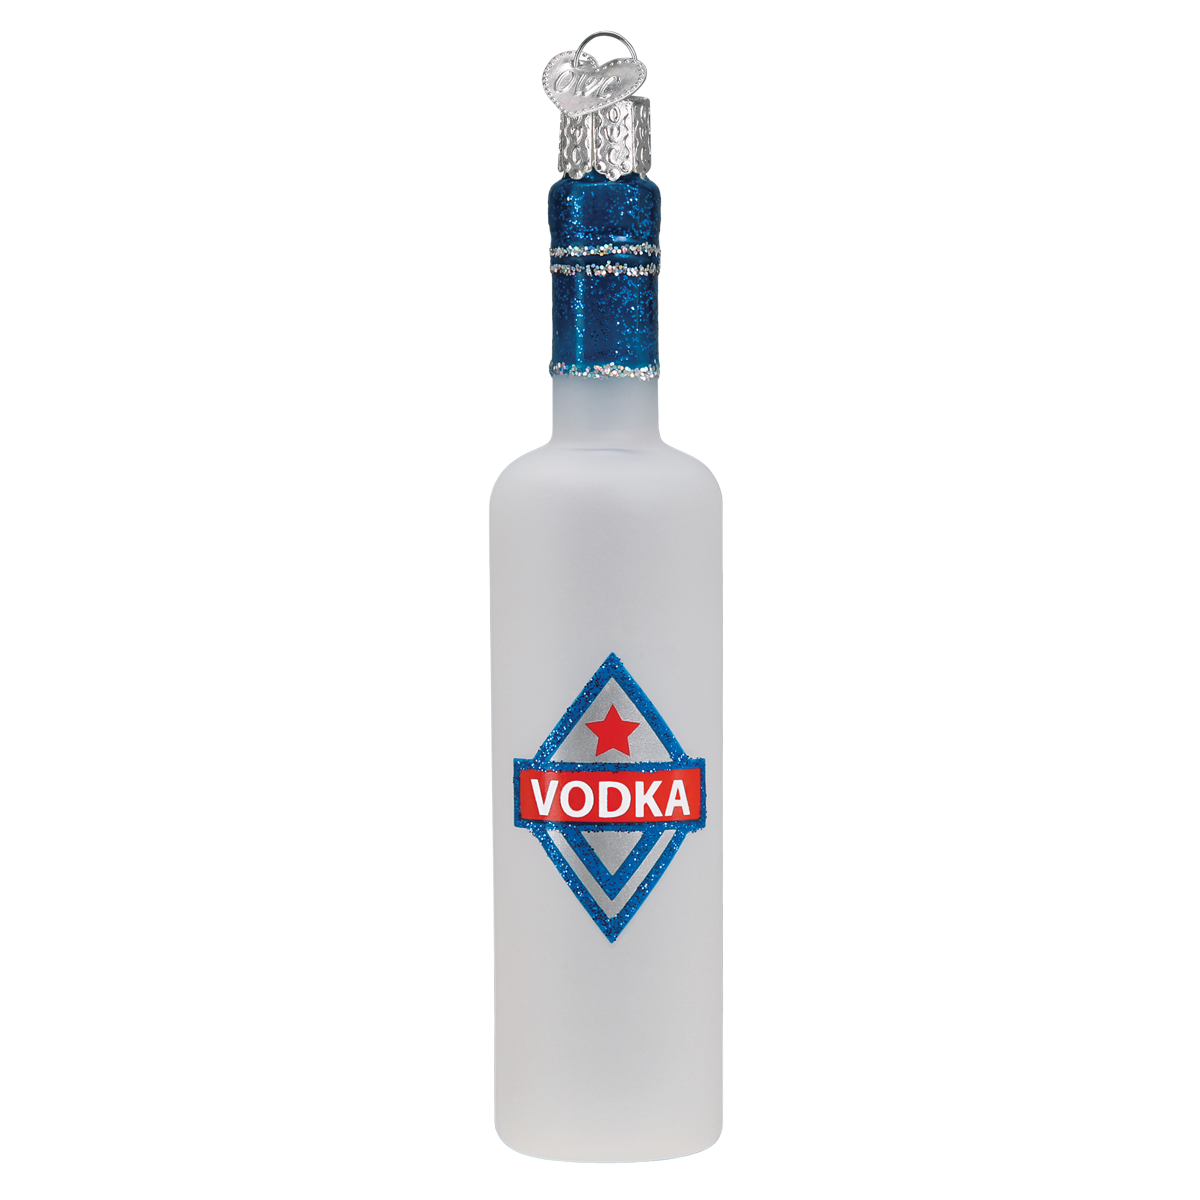 Vodka Bottle Ornaments